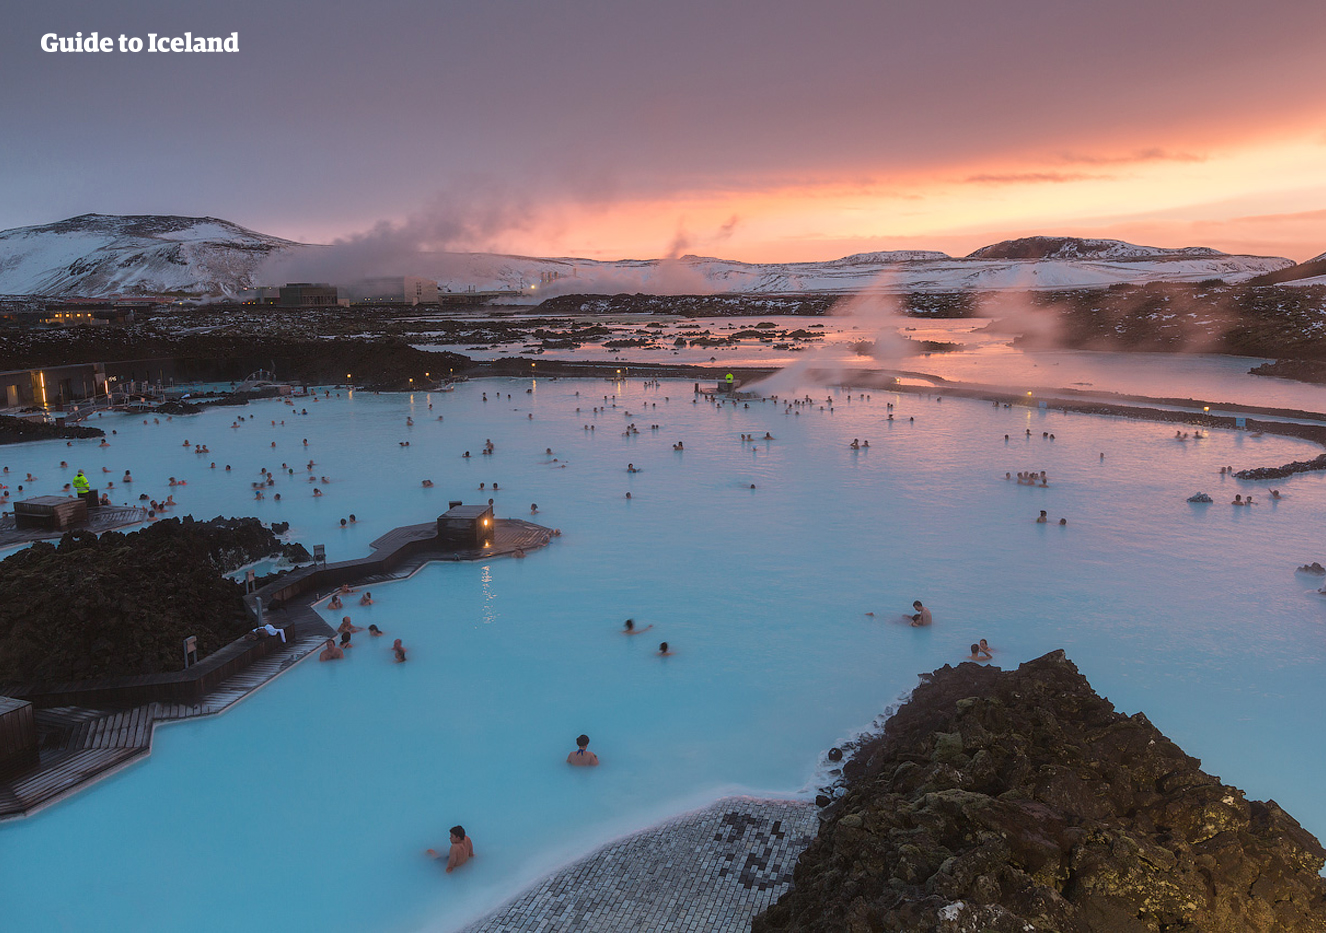 The Blue Lagoon remains the most popular stop when traveling in Iceland.